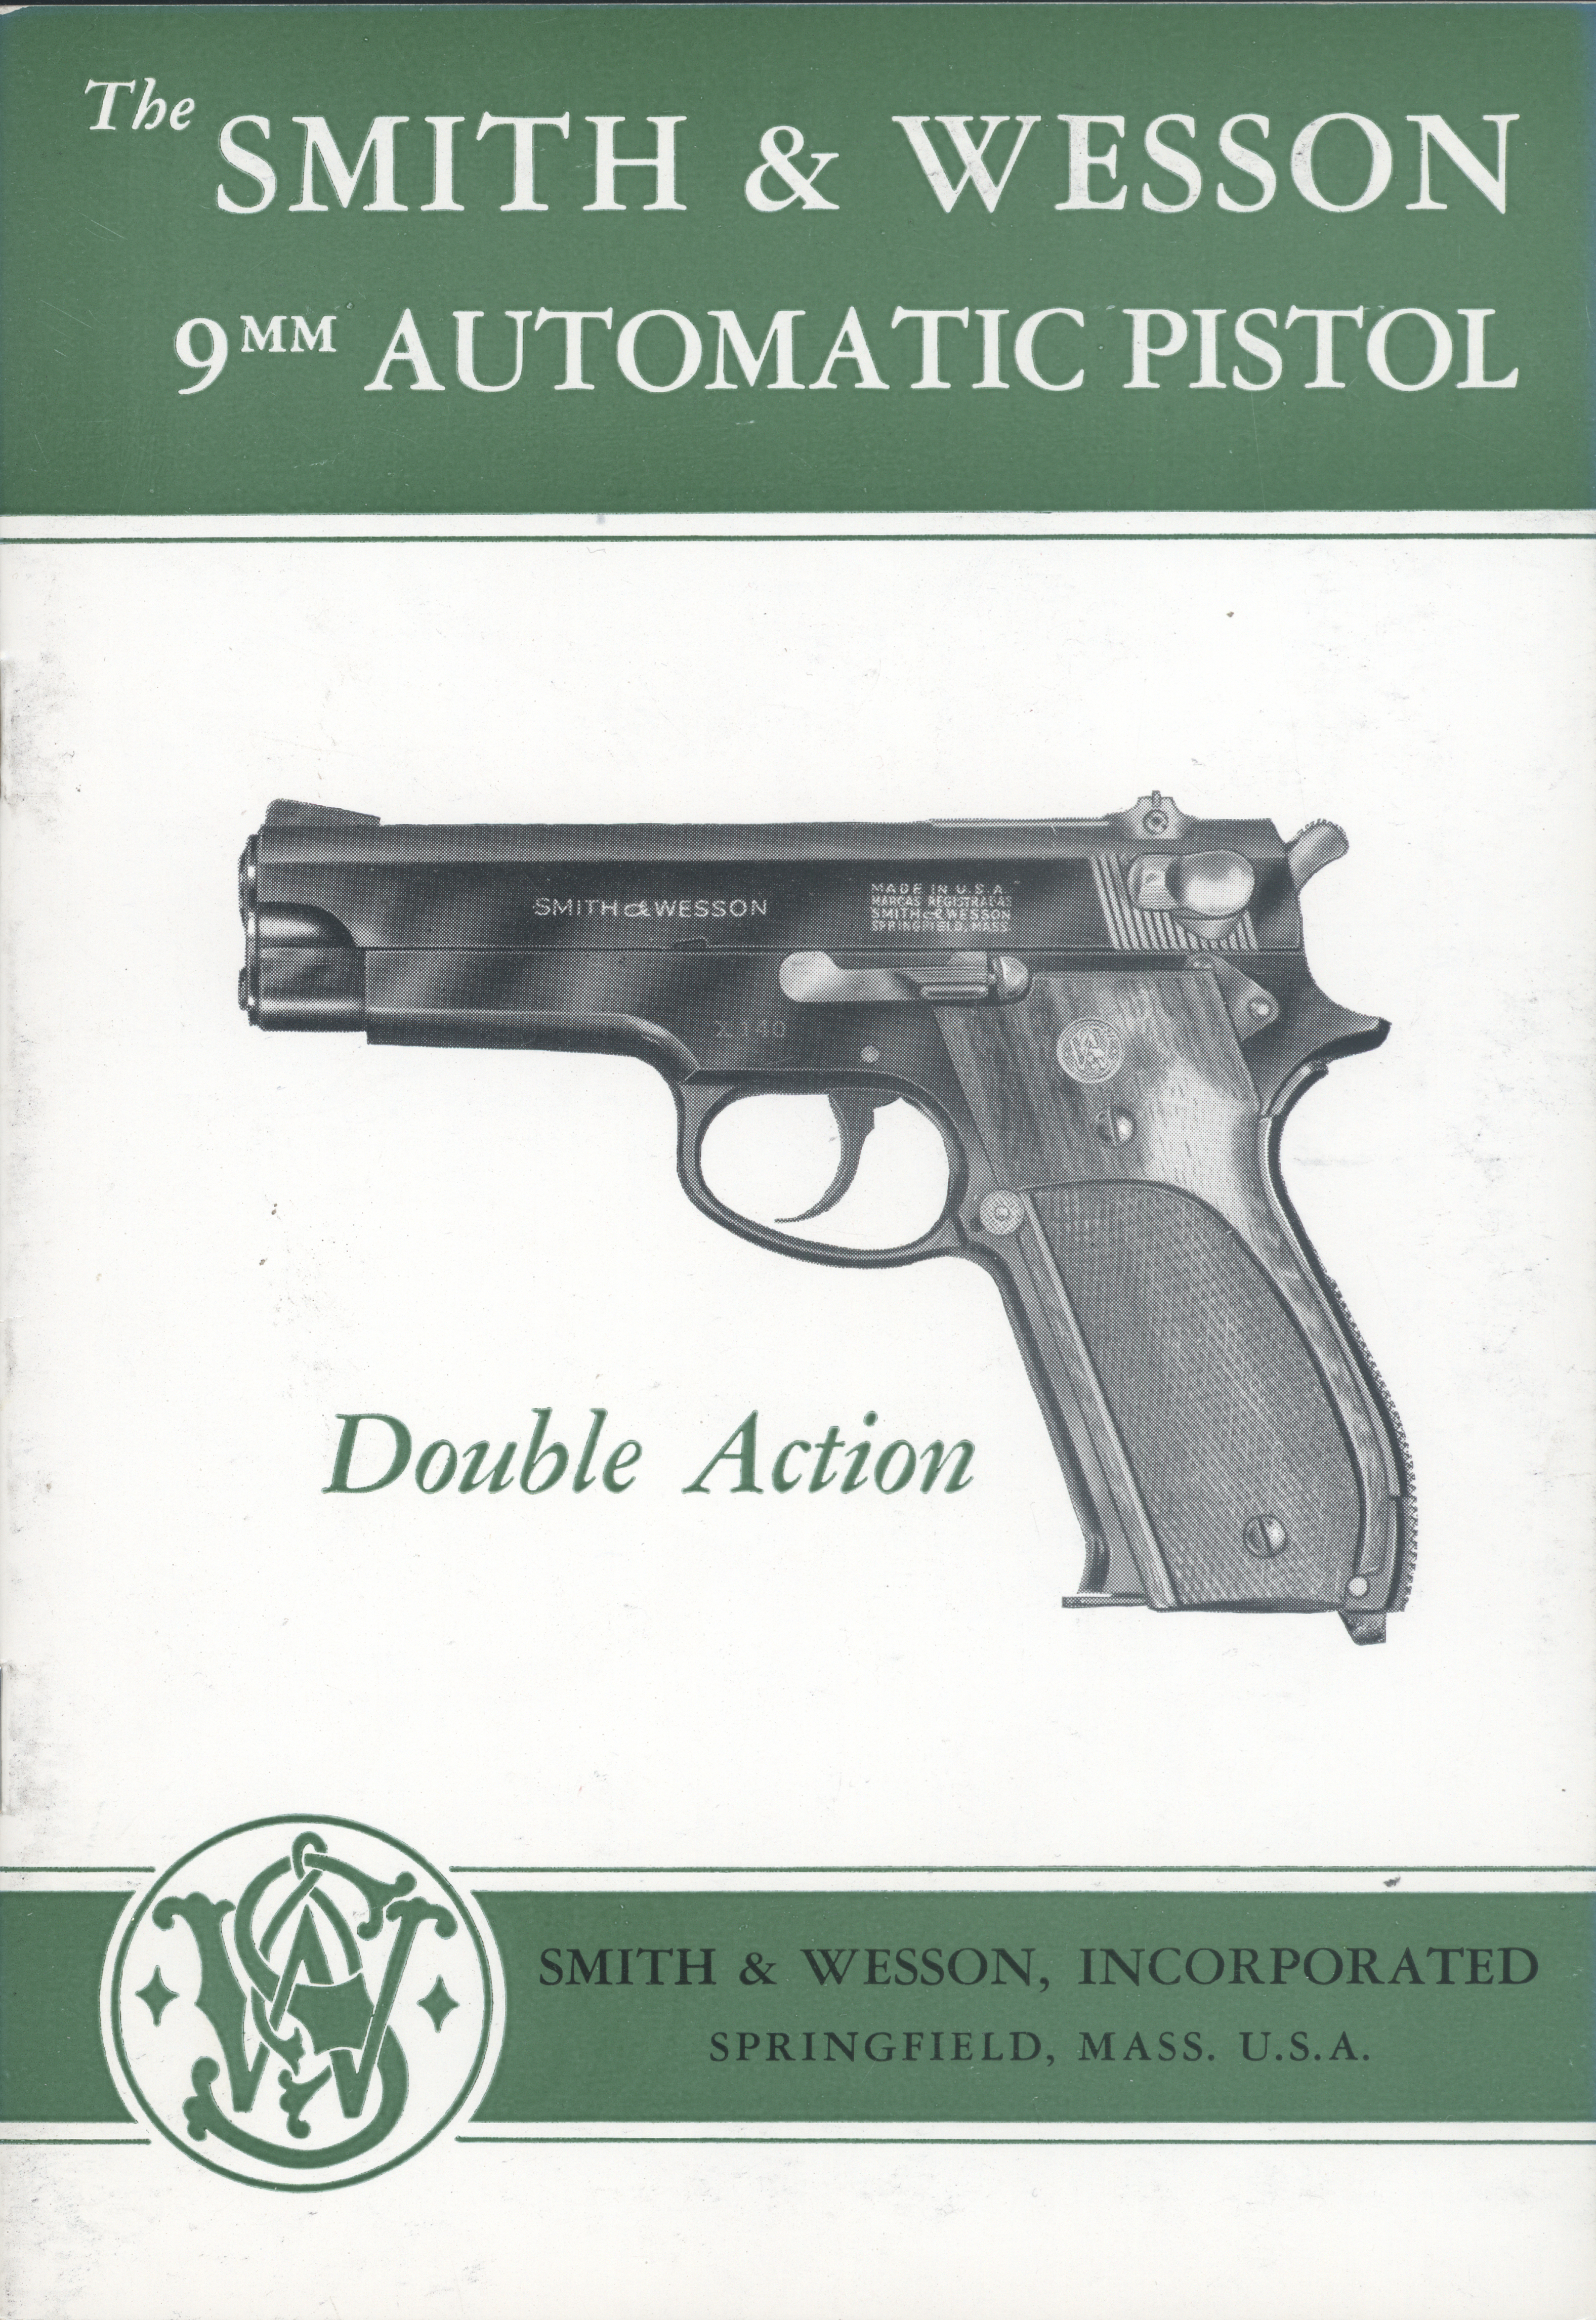 History of Smith & Wesson | Smith & Wesson